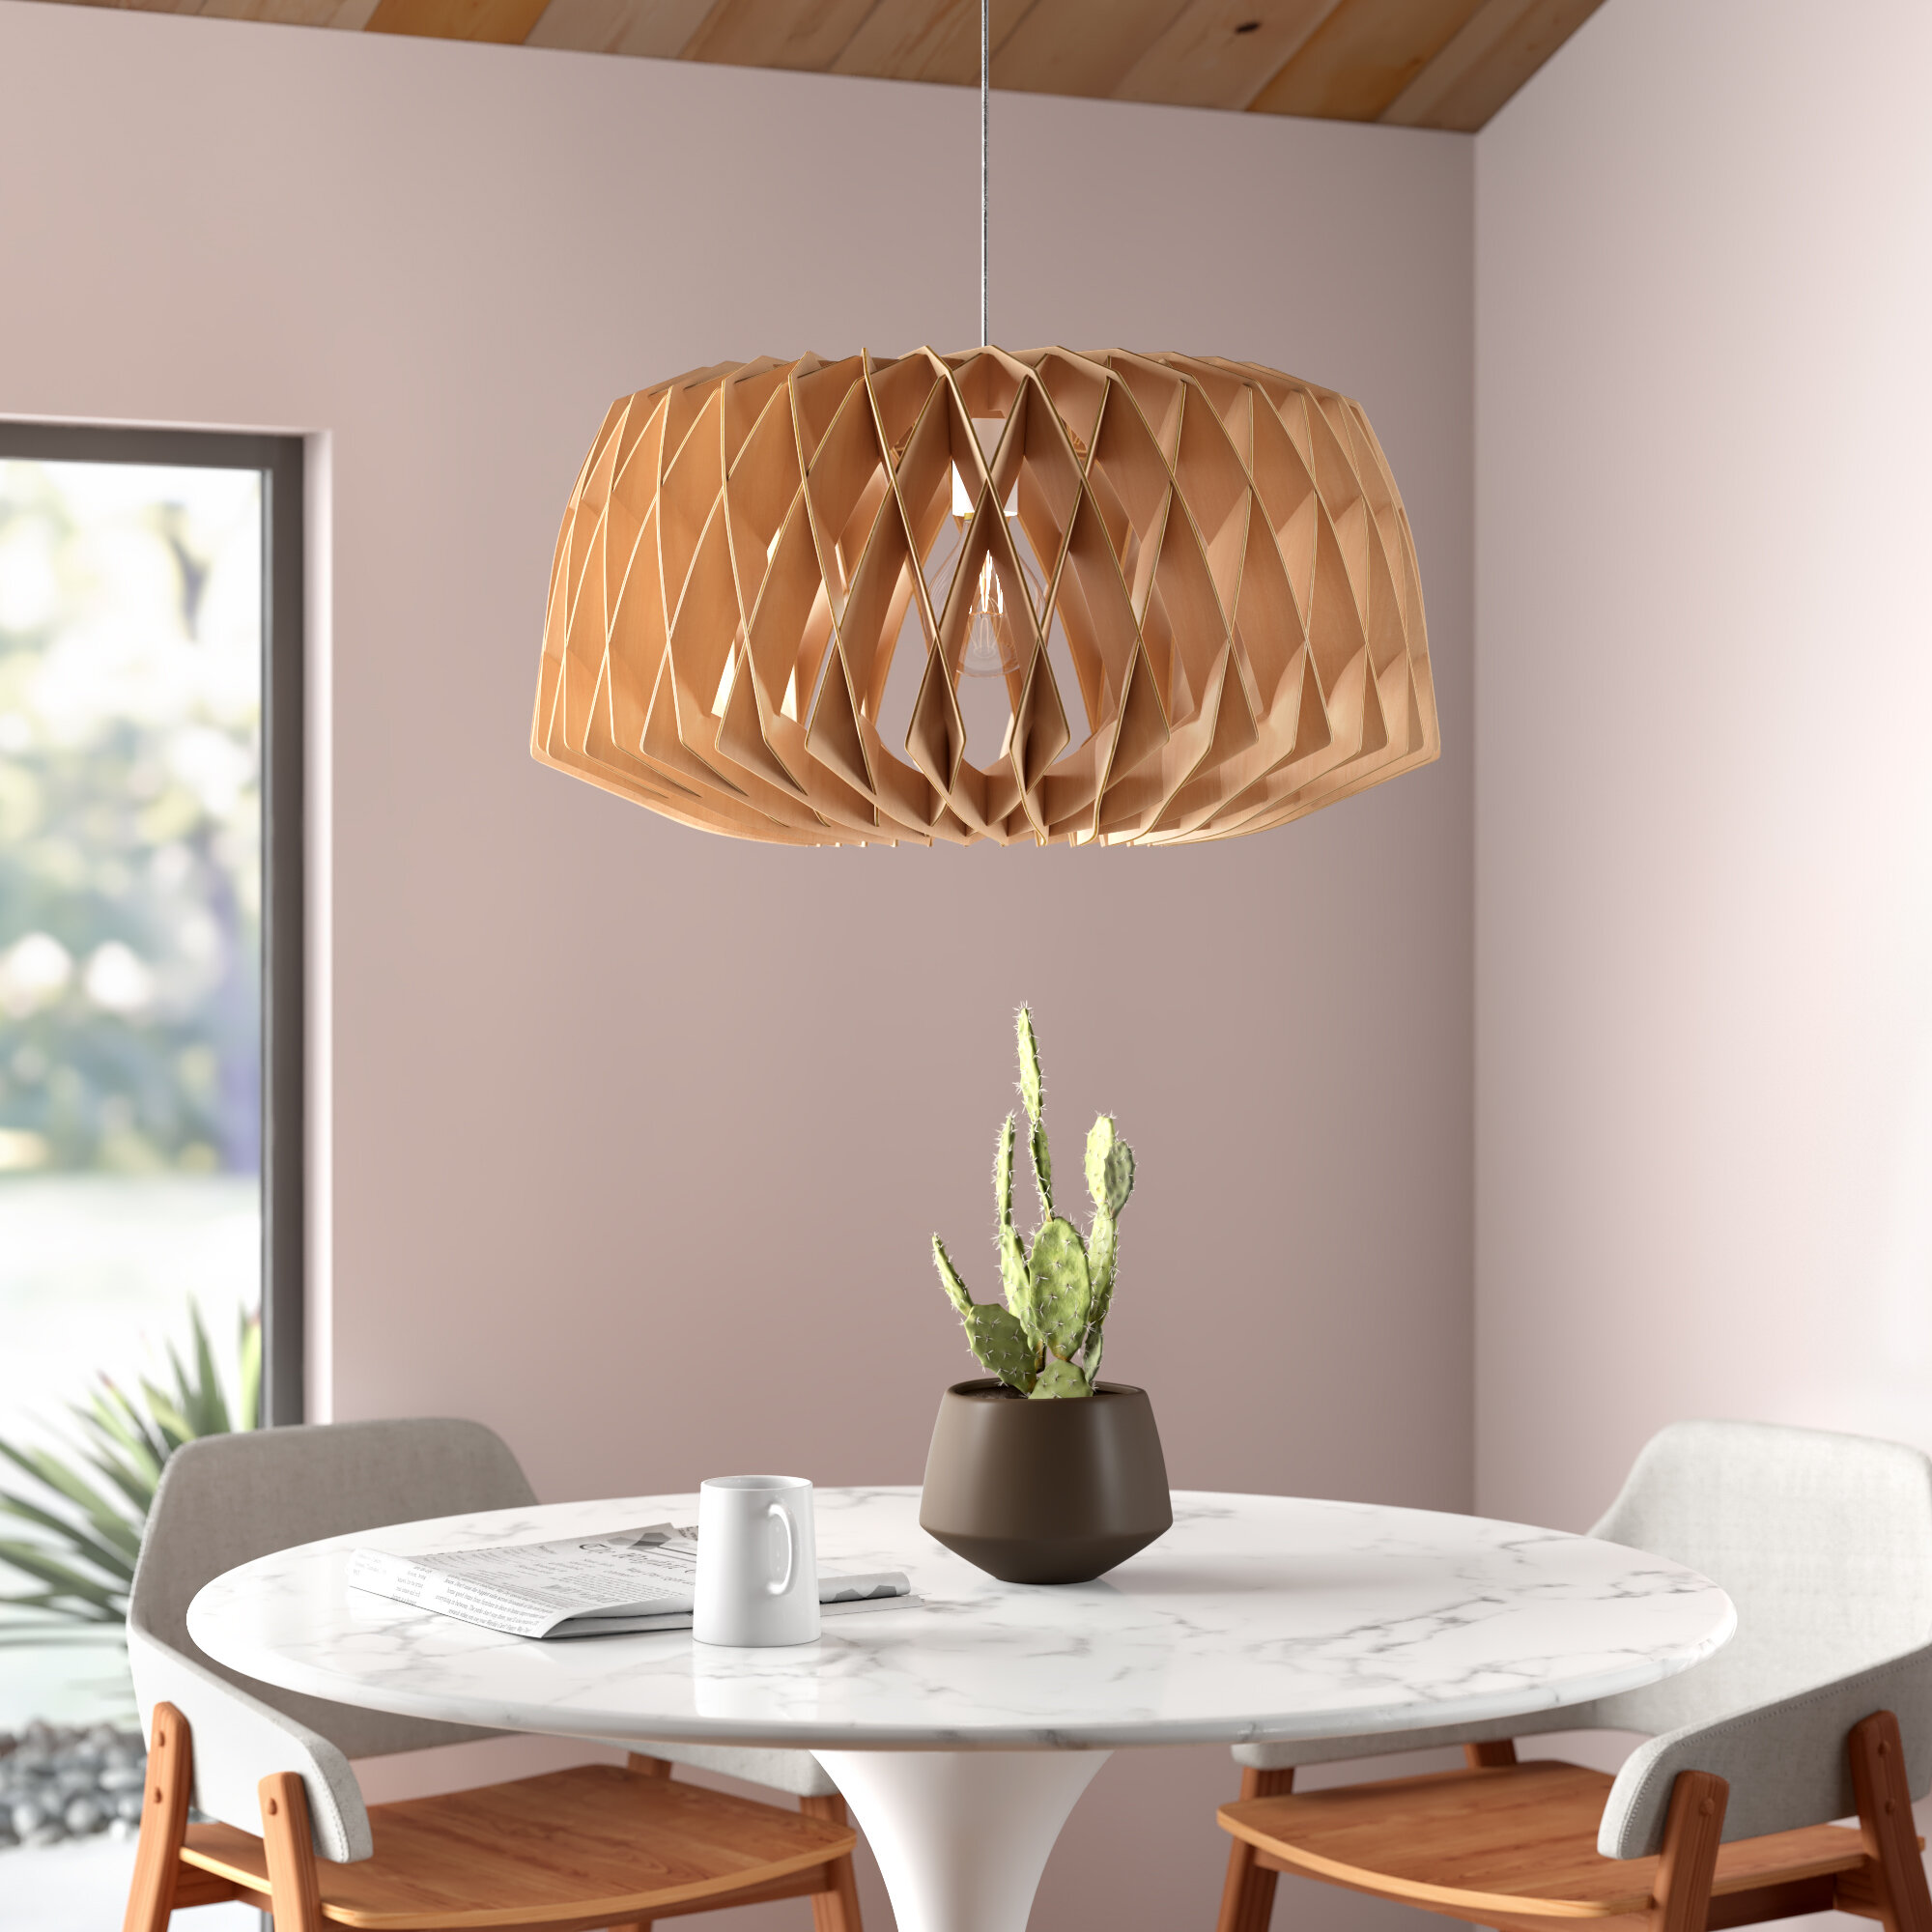 Beatty 1 Light Single Geometric Pendant Reviews Allmodern